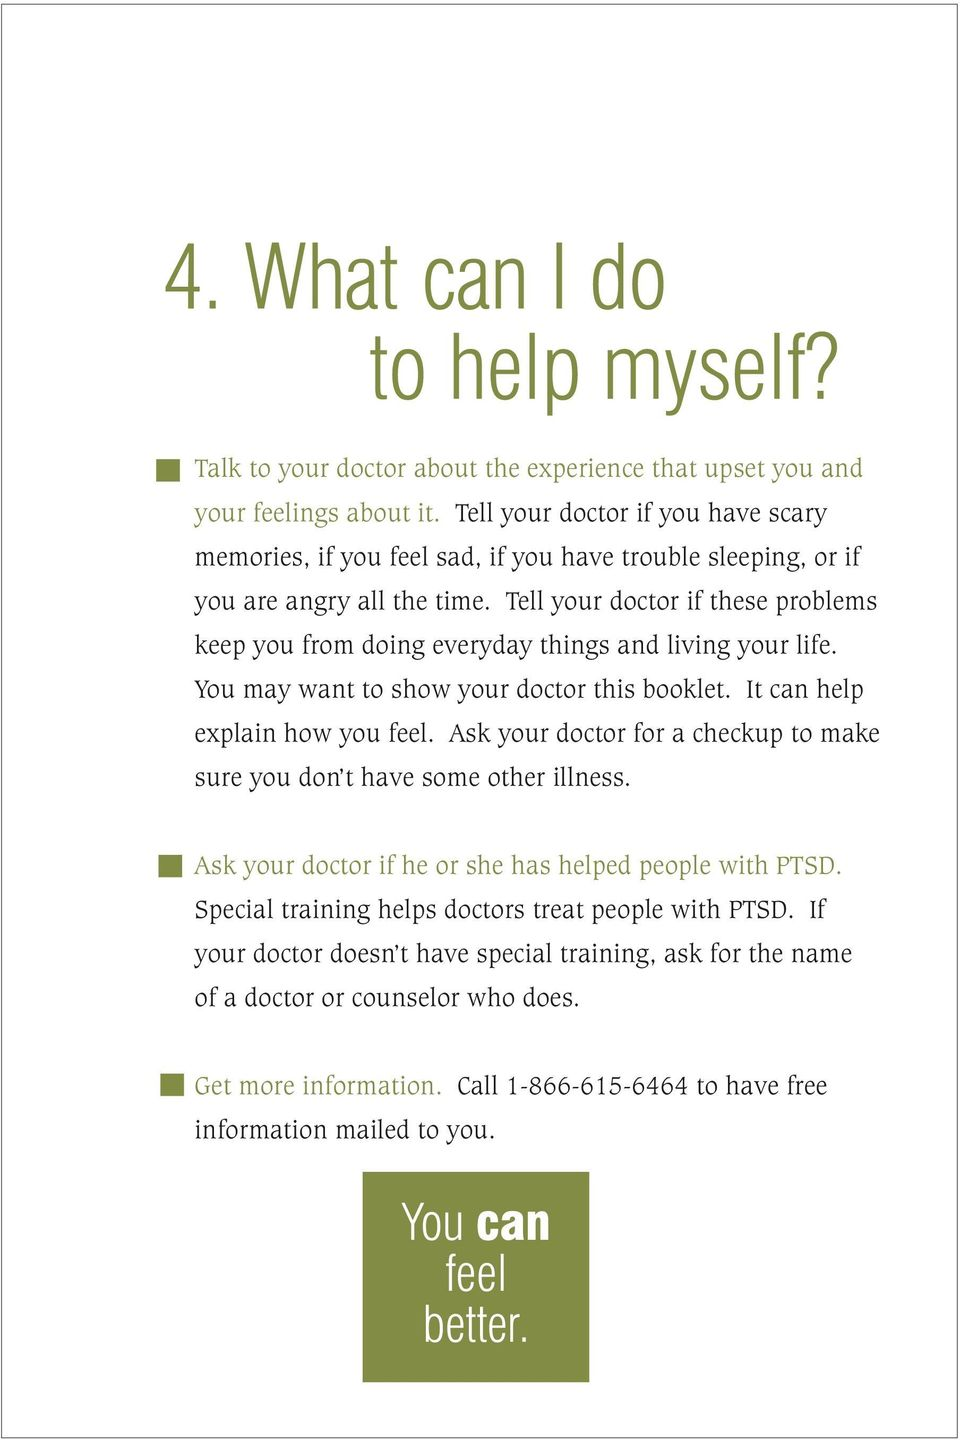 Tell your doctor if these problems keep you from doing everyday things and living your life. You may want to show your doctor this booklet. It can help explain how you feel.